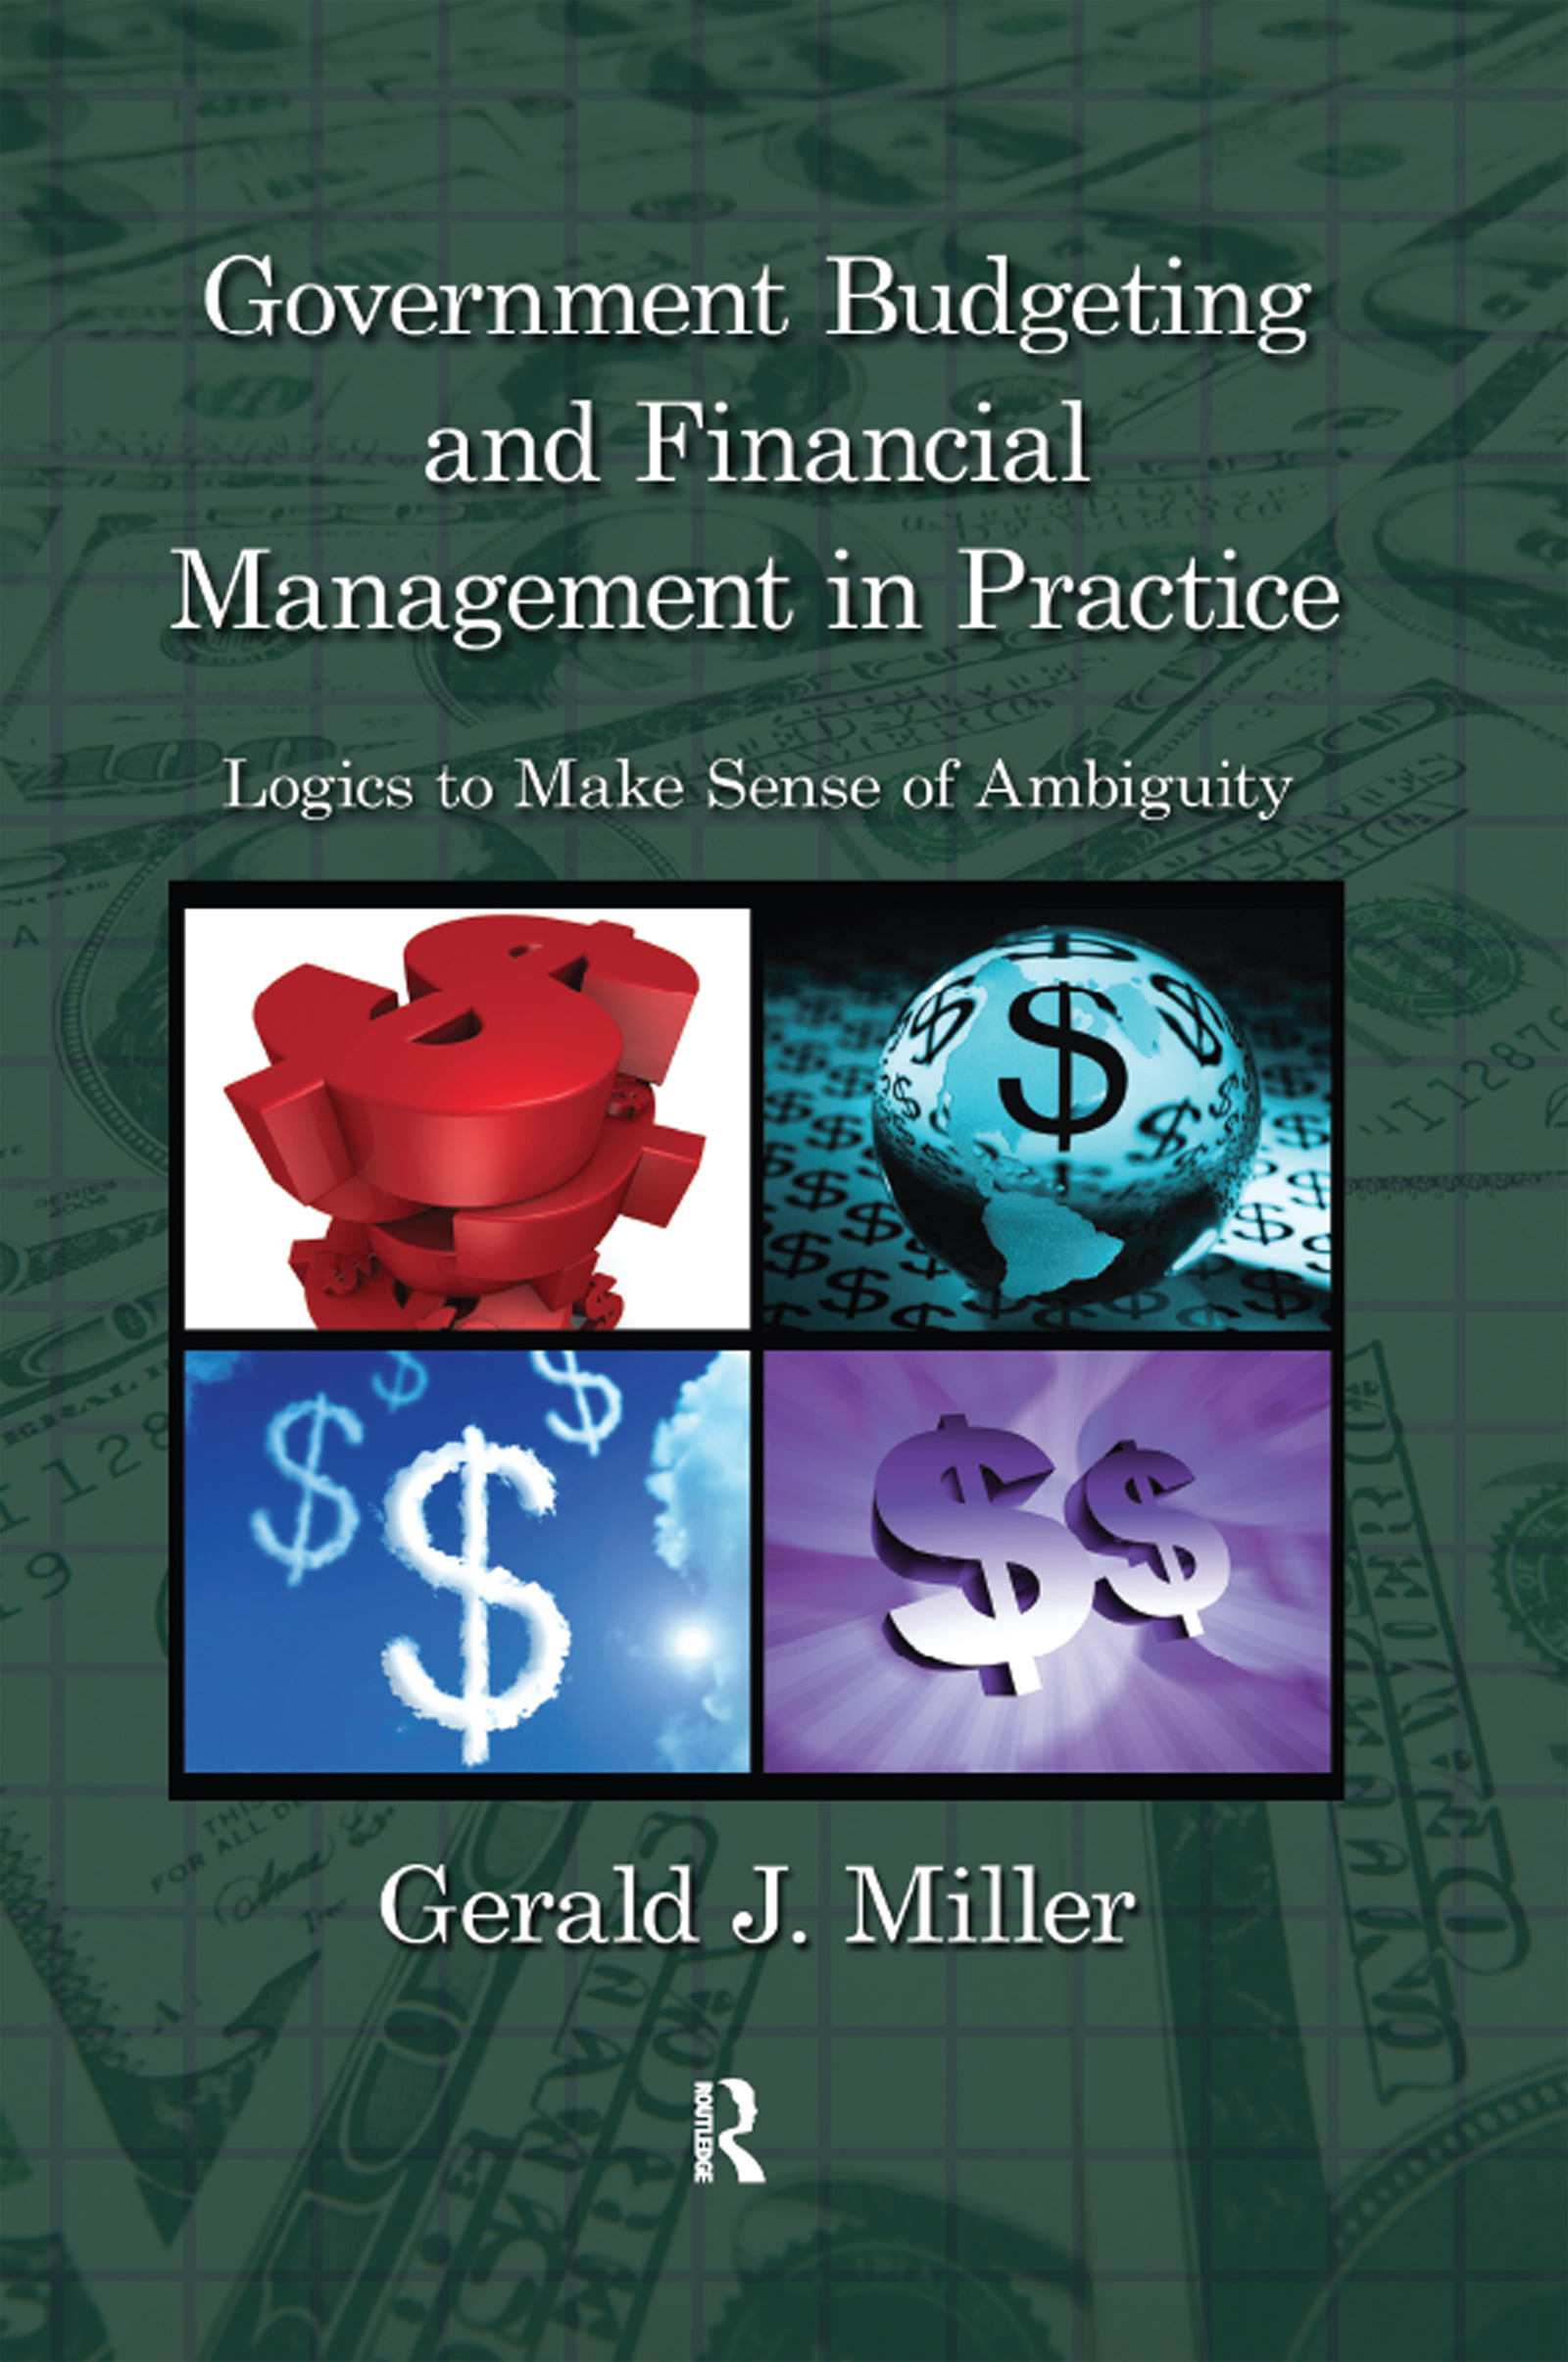 Government Budgeting and Financial Management in Practice: Logics to Make Sense of Ambiguity book cover